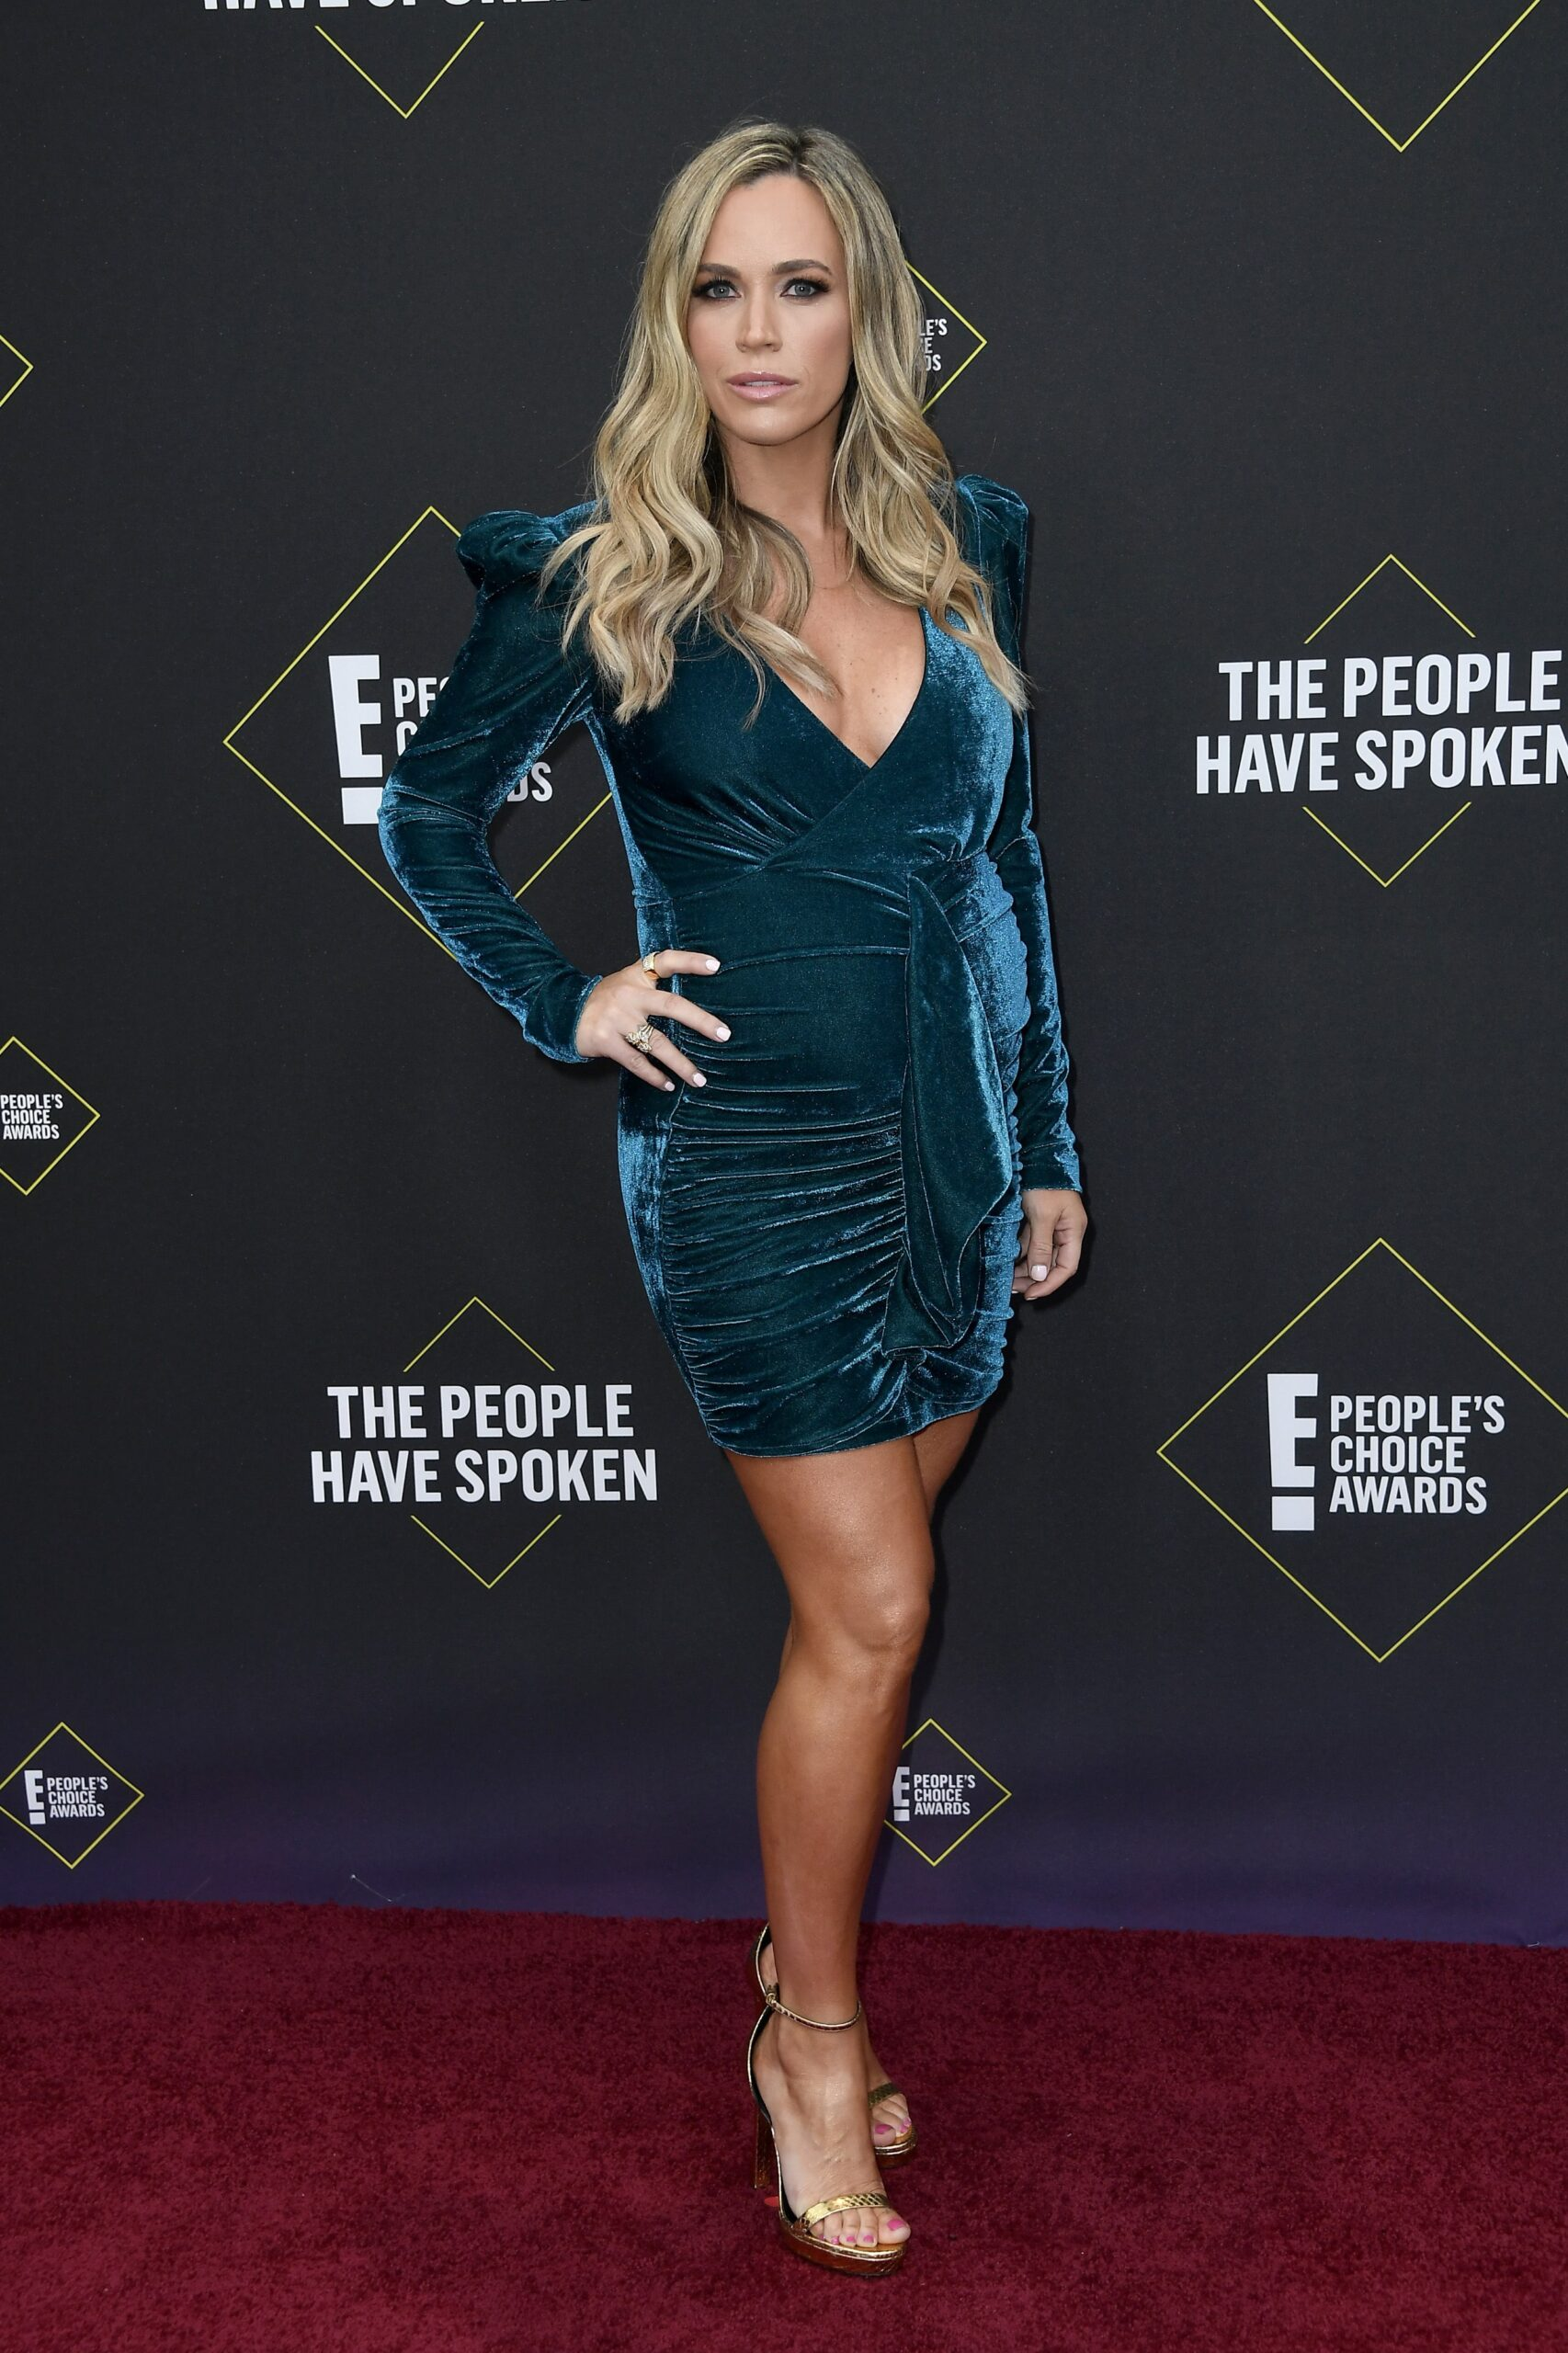 2019 E! People's Choice Awards - Arrivals